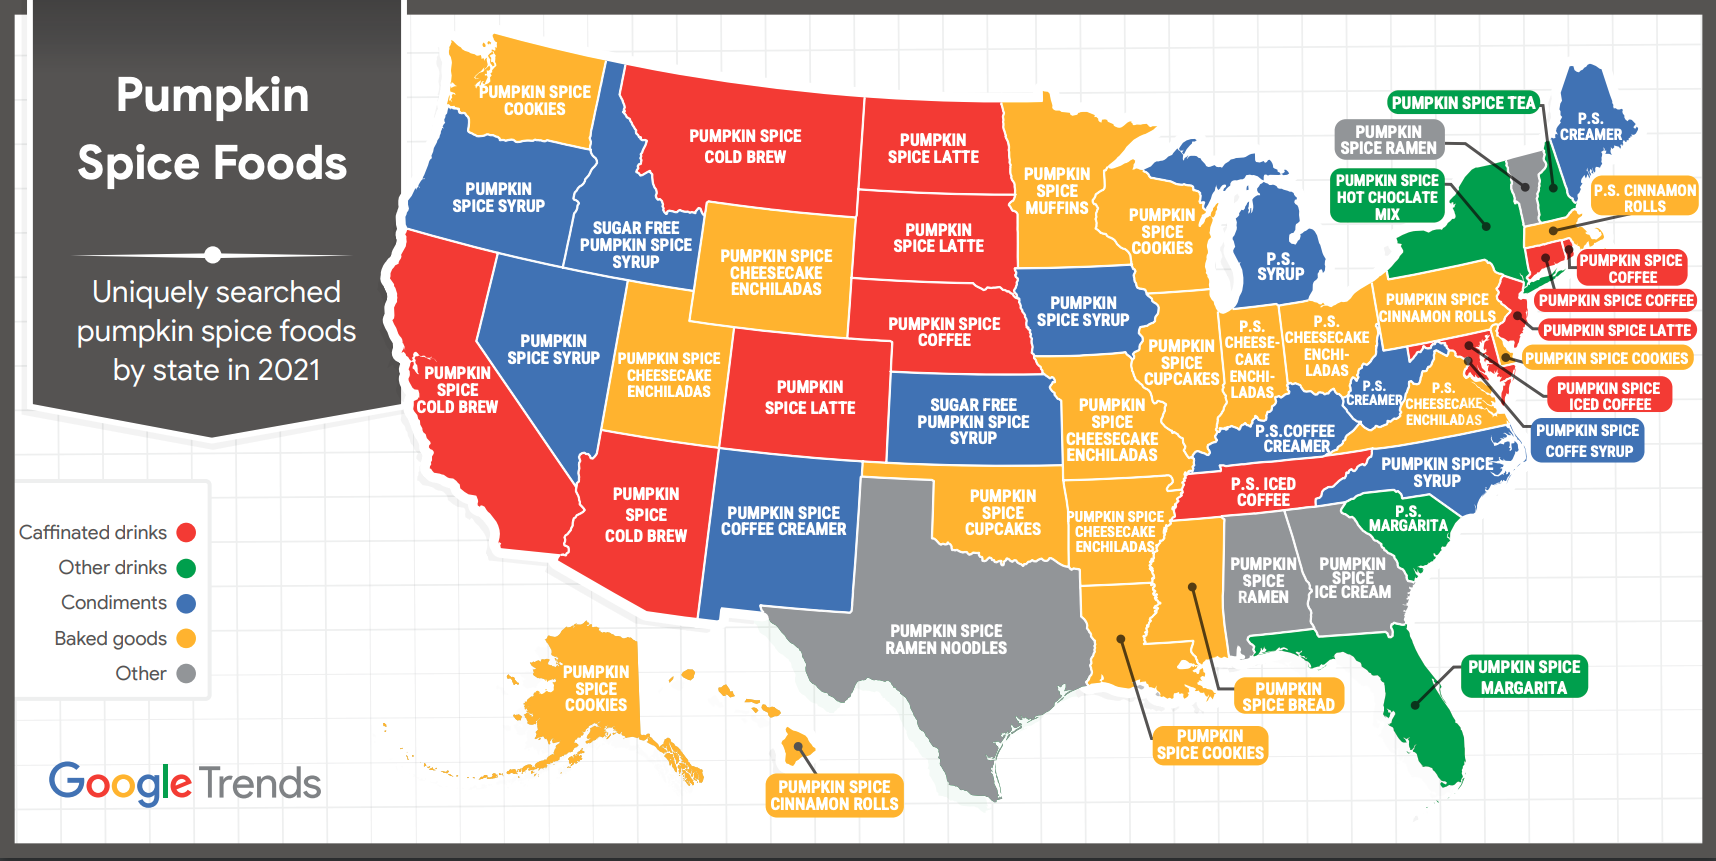 A map shows the most searched for pumpkin spice items in the country.